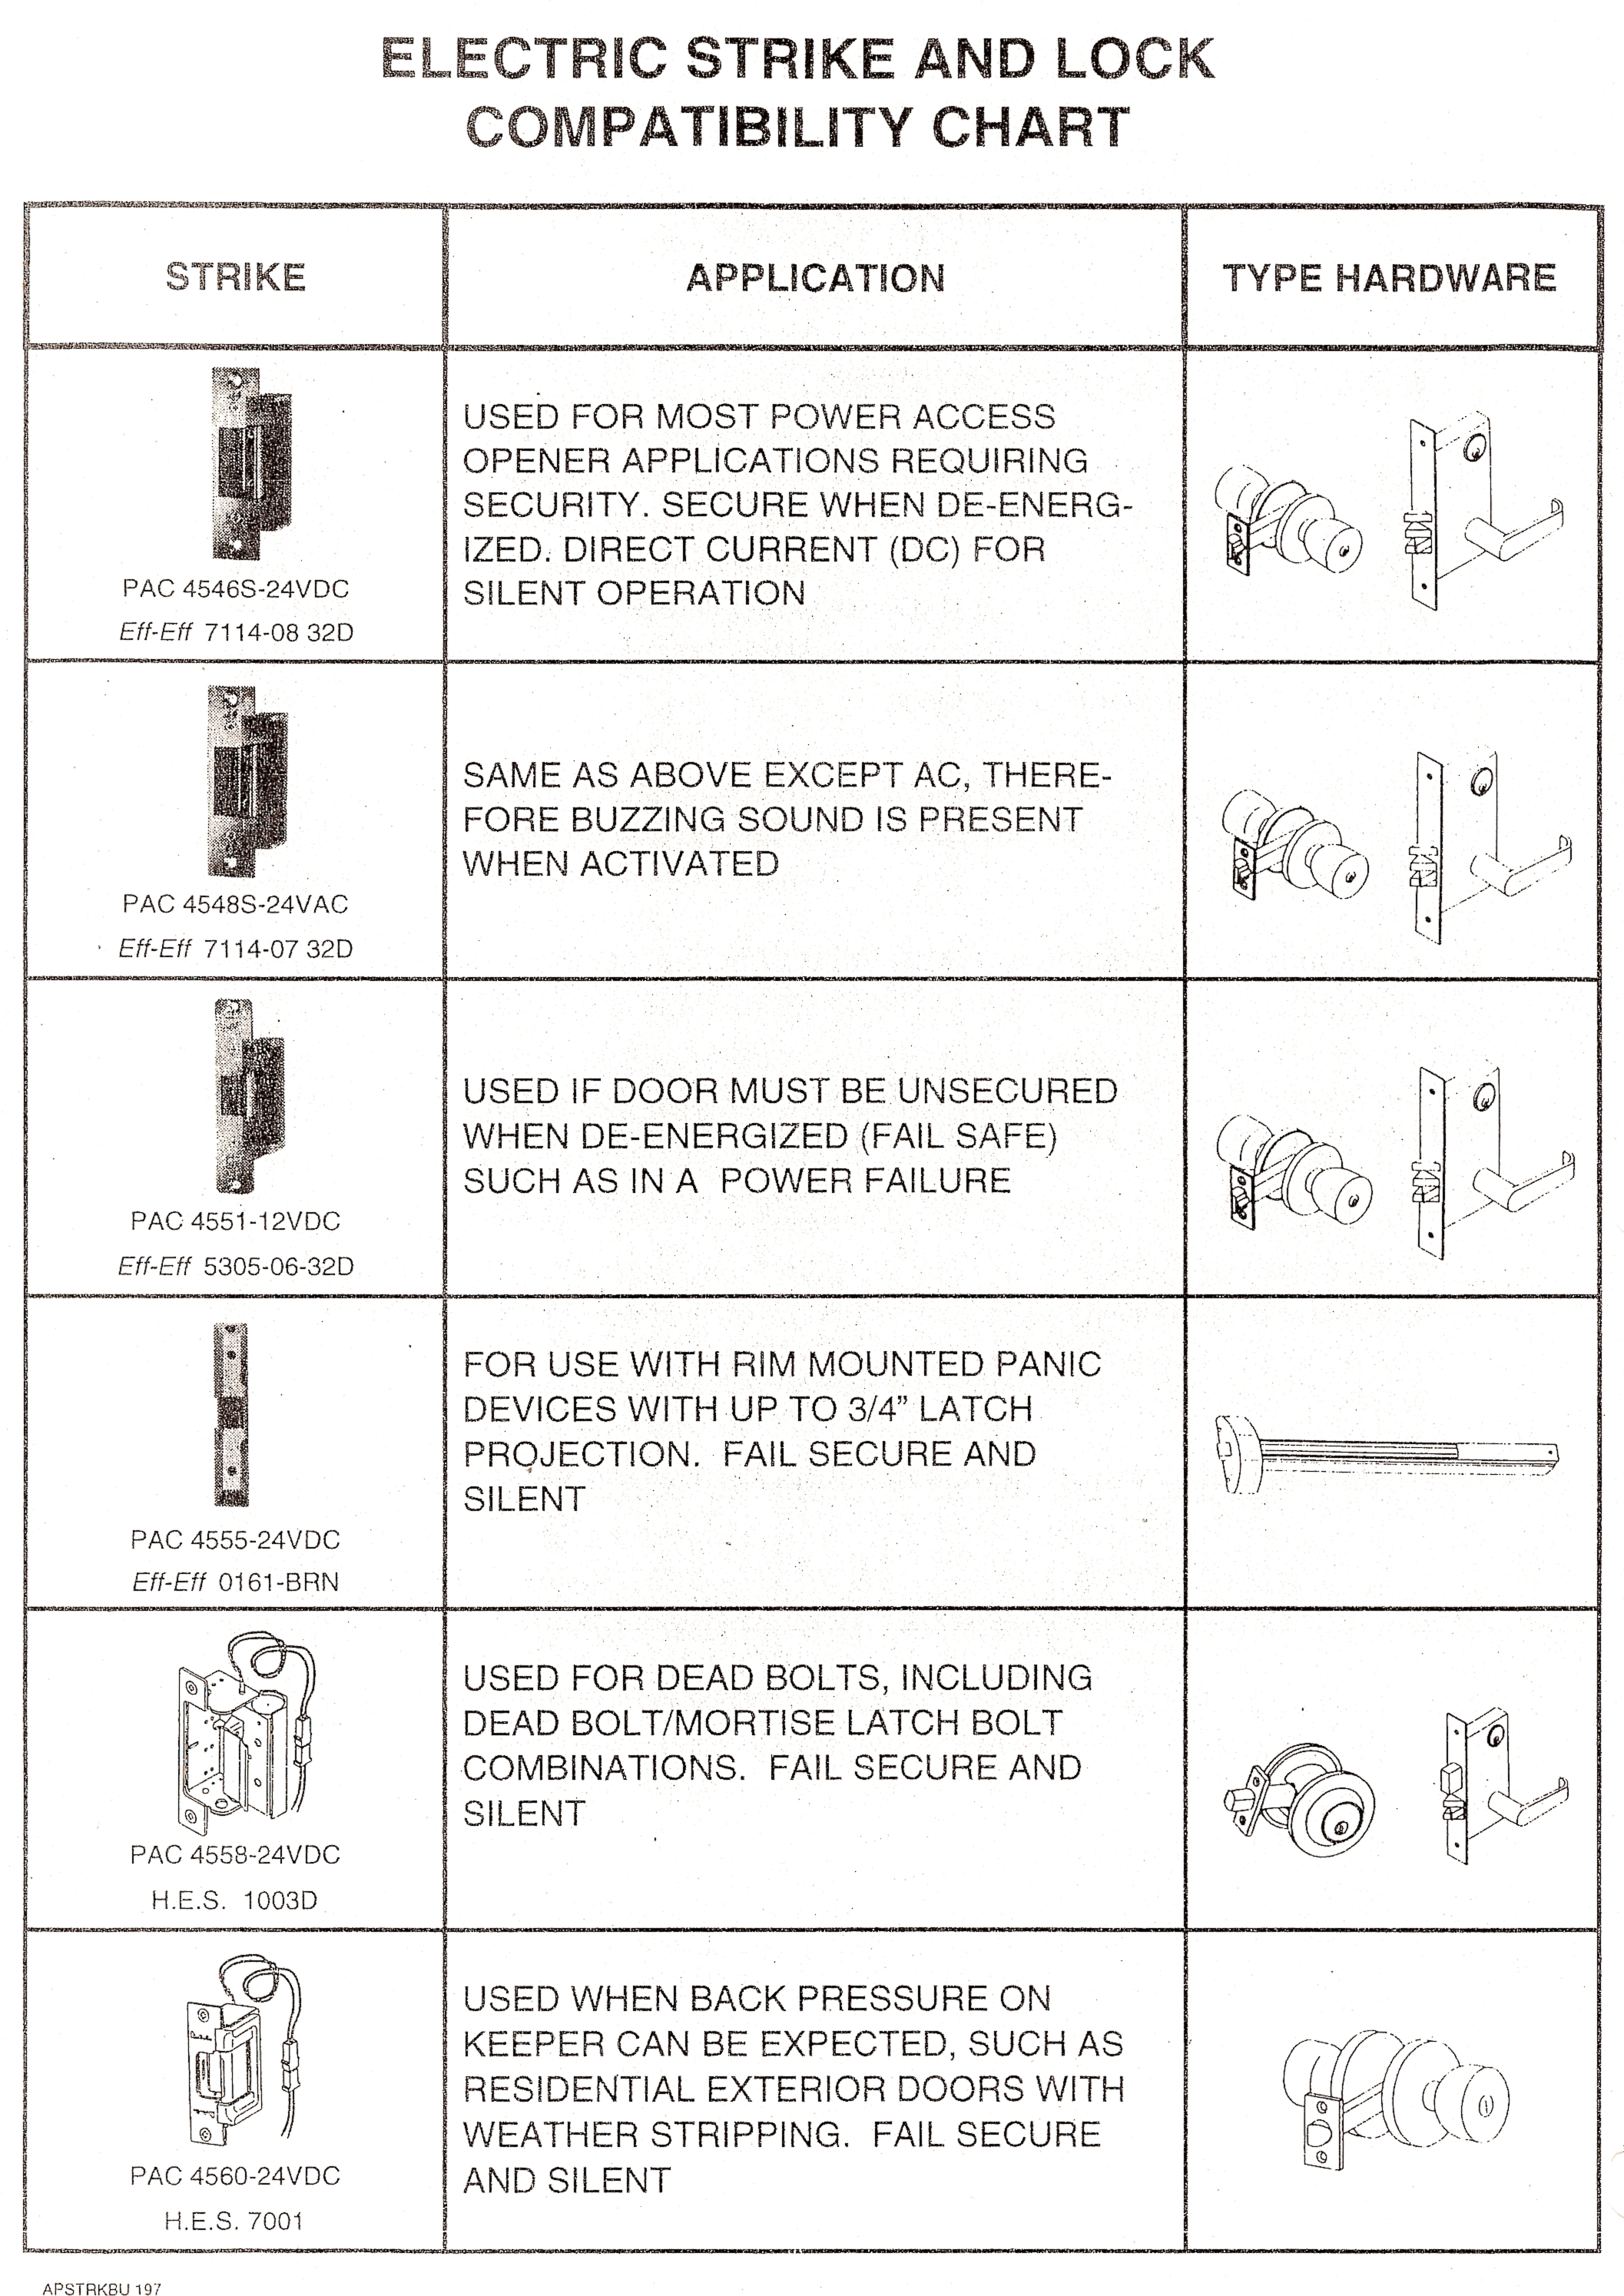 Electric strike choices for automatic door openers  sc 1 st  Barrier Free Access Systems & Electric Strikes for Door Automation \u0026 Handicap Access by Barrier ...